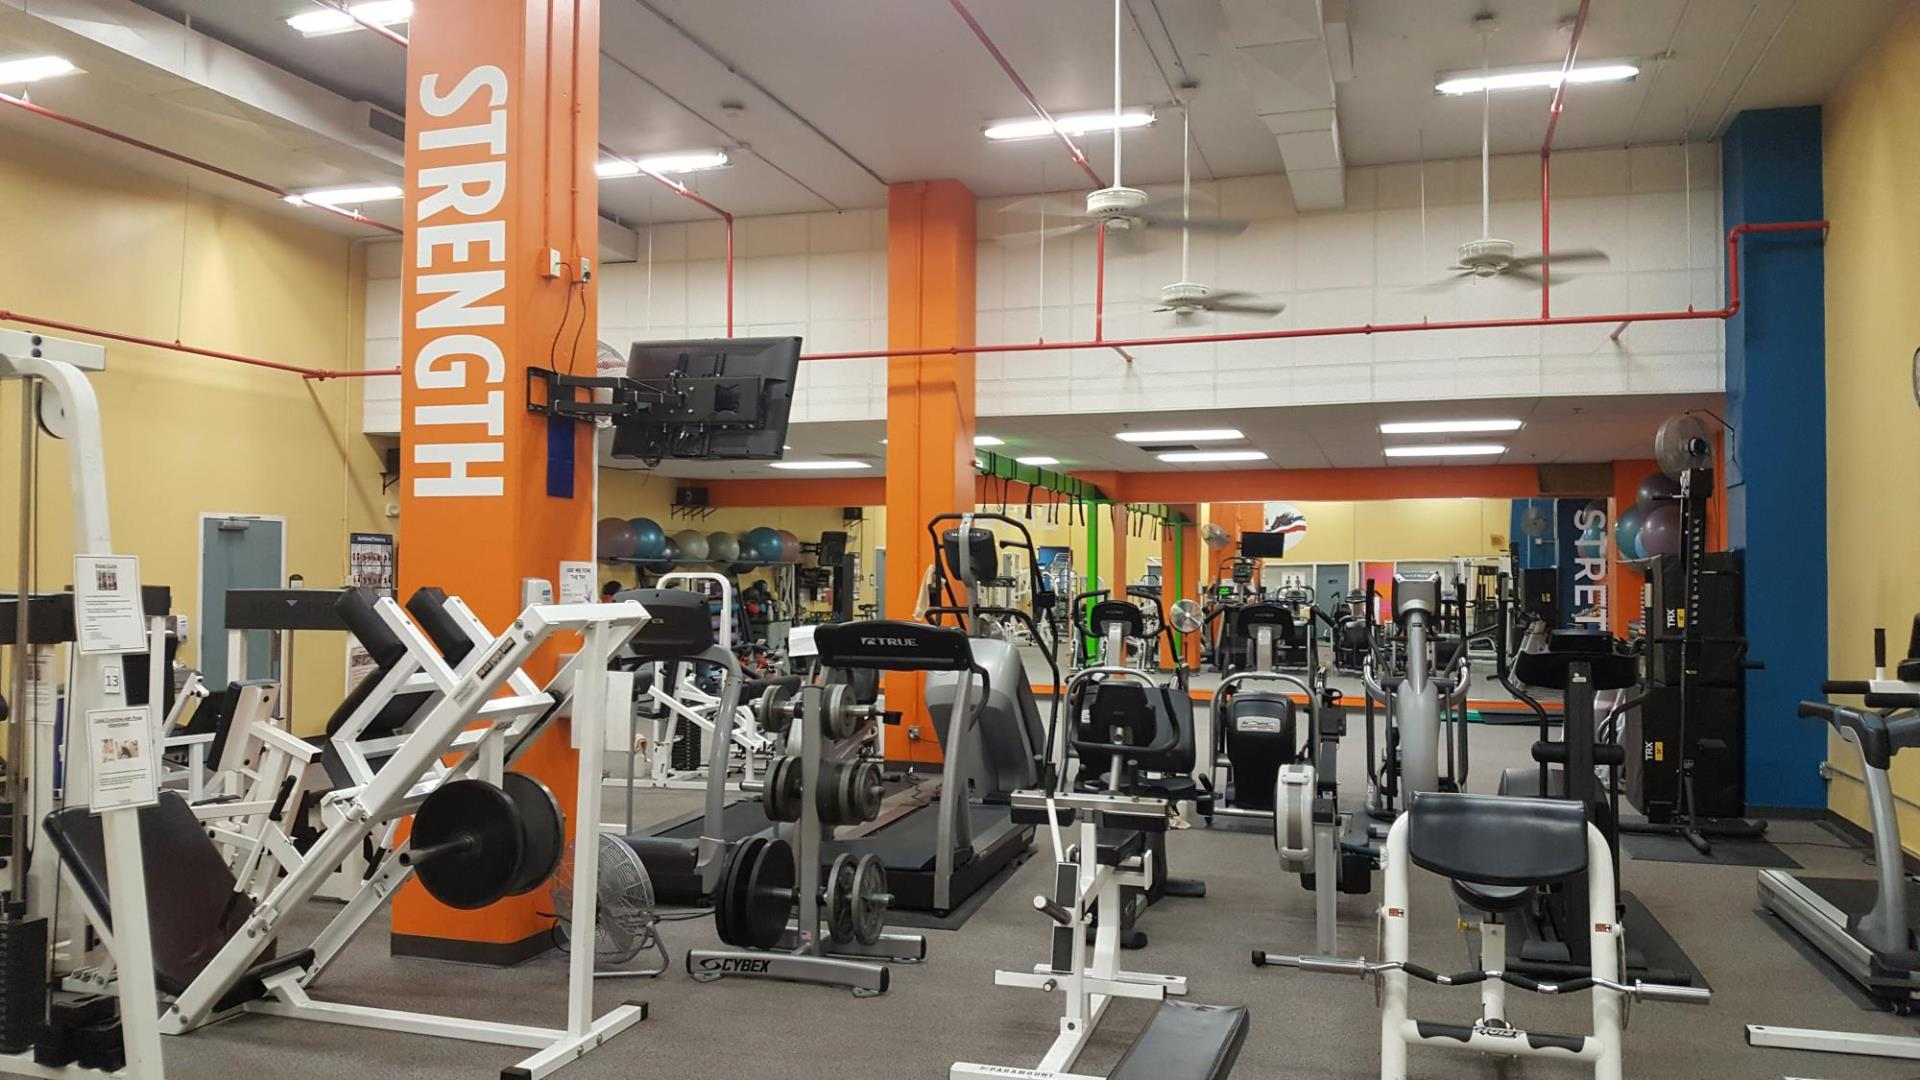 Employee fitness center at 1660 Ringling Blvd.